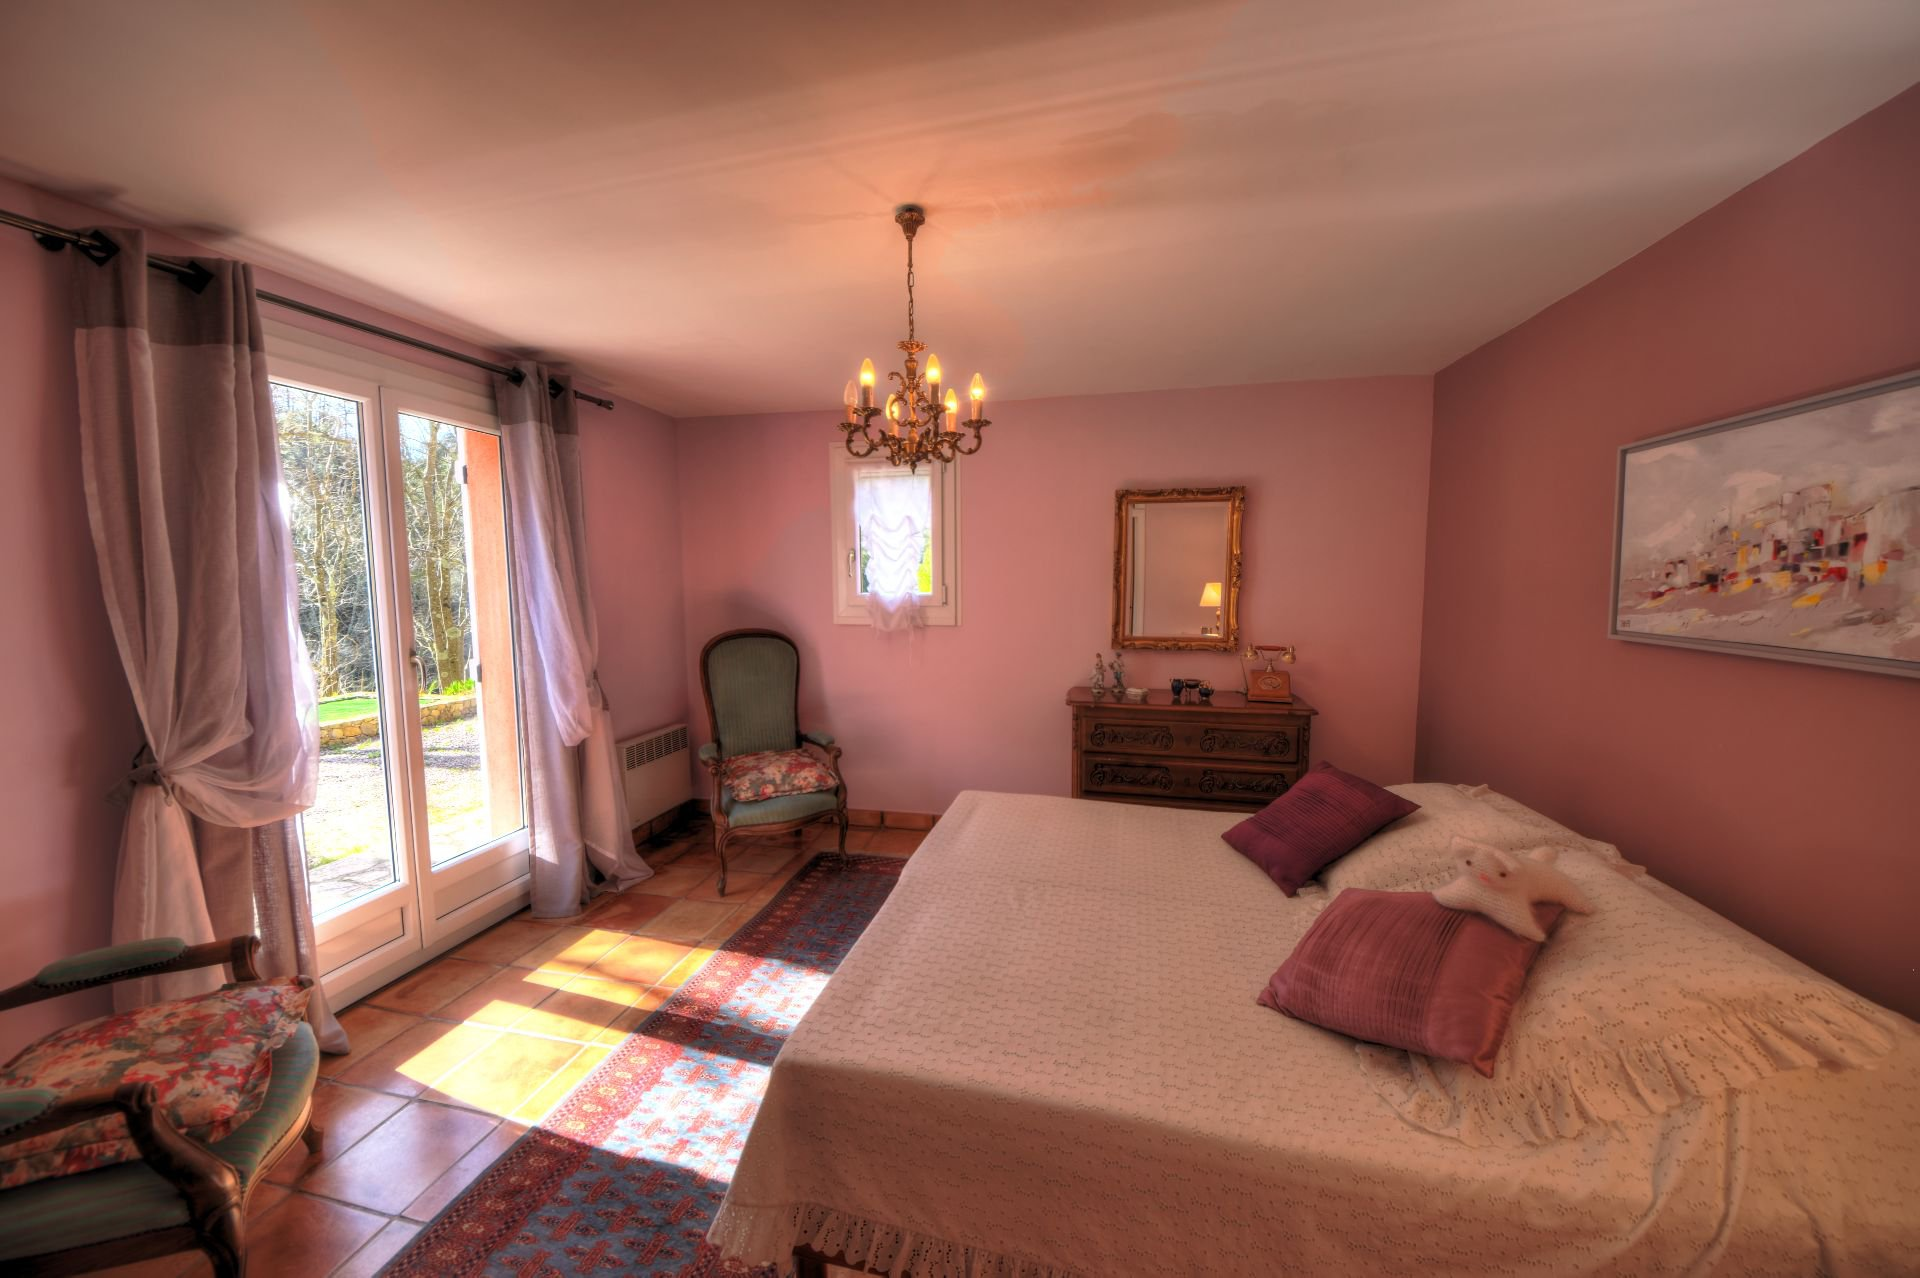 A bedroom of the house of the small property of 4 ha, Barjols, Var, Provence